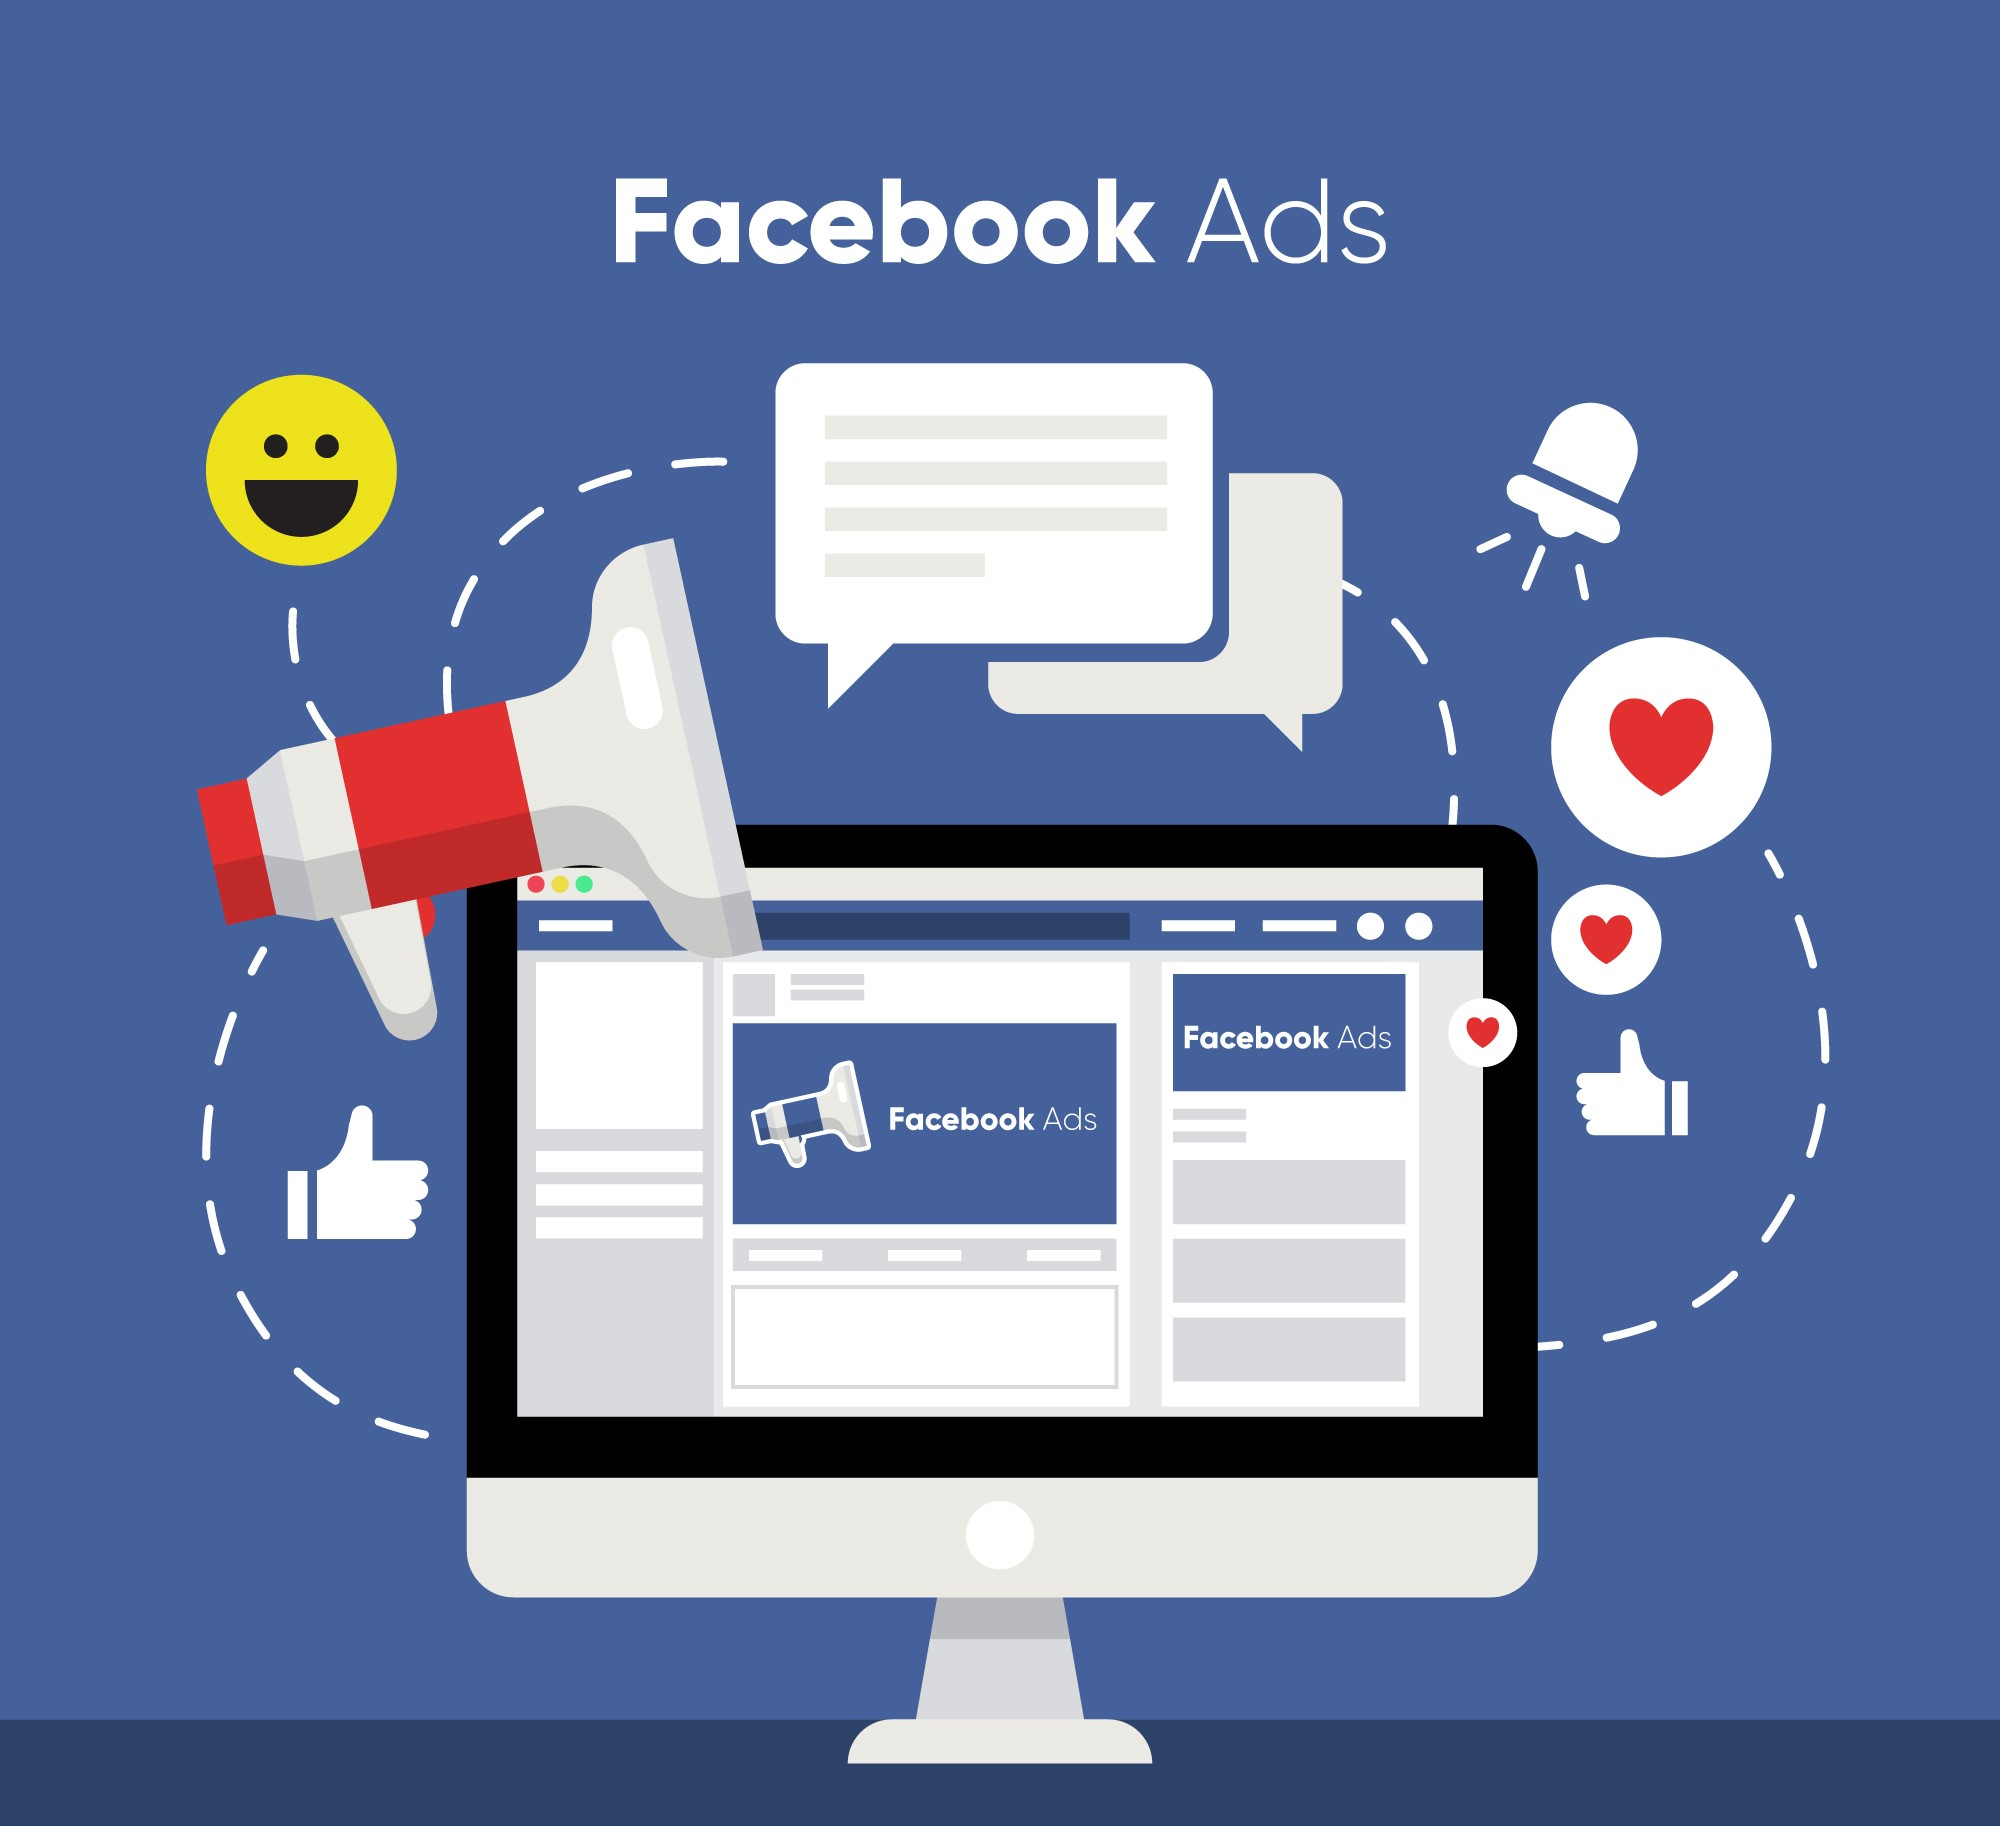 Facebook is well known for its ad network